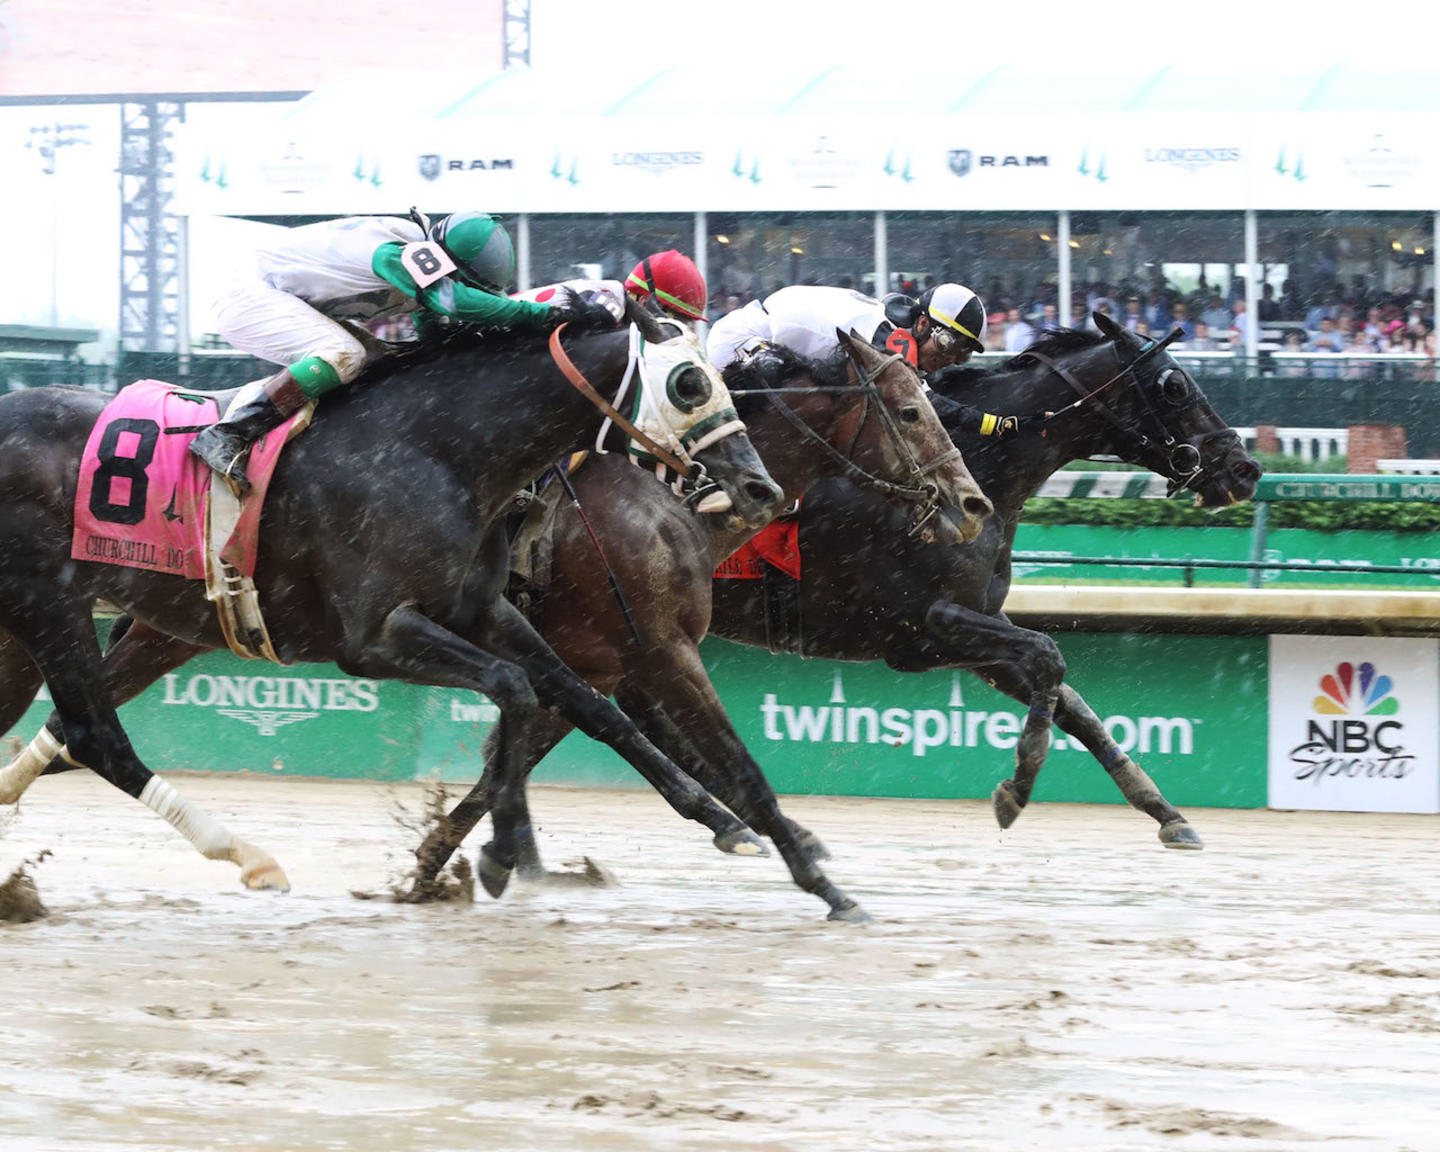 LIMOUSINE LIBERAL - The Churchill Downs G2 - 84th Running - 05-05-18 - R08 - CD - Finish 01